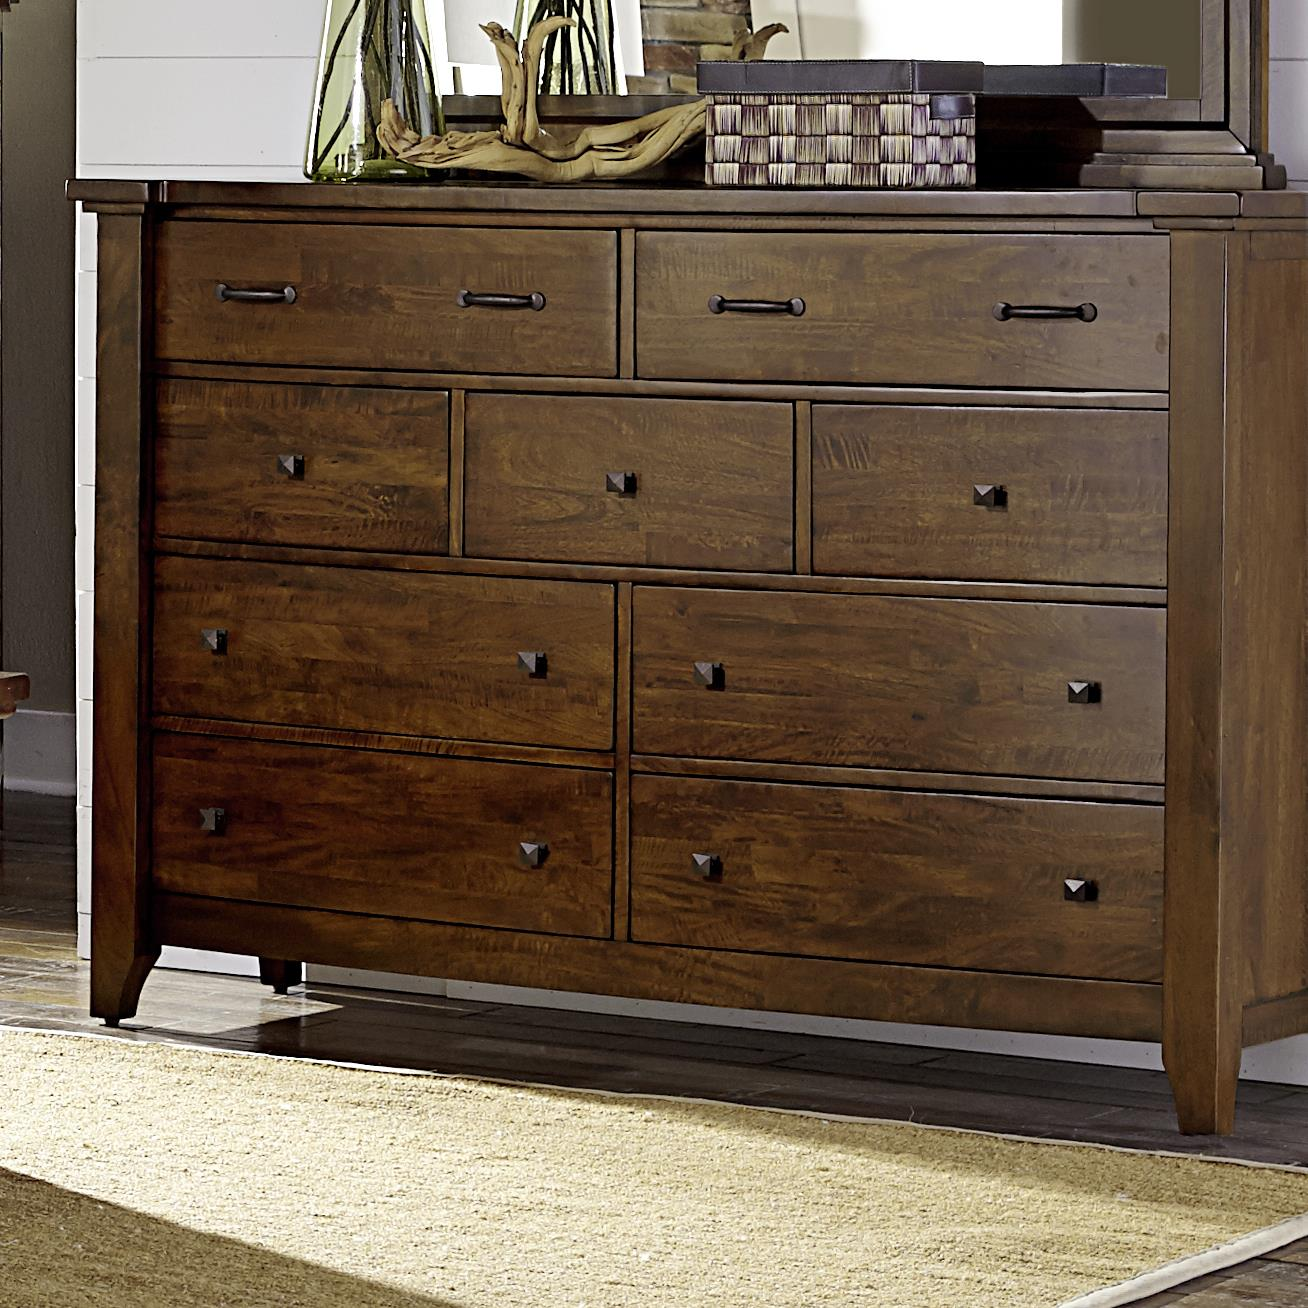 Marvellous Napa Furniture Designs Whistler Retreat Drawer Chest Item Napa Furniture Designs Whistler Retreat Solid Mango Drawer Chest 9 Drawer Dresser Dimensions 9 Drawer Dresser Canada houzz 01 9 Drawer Dresser